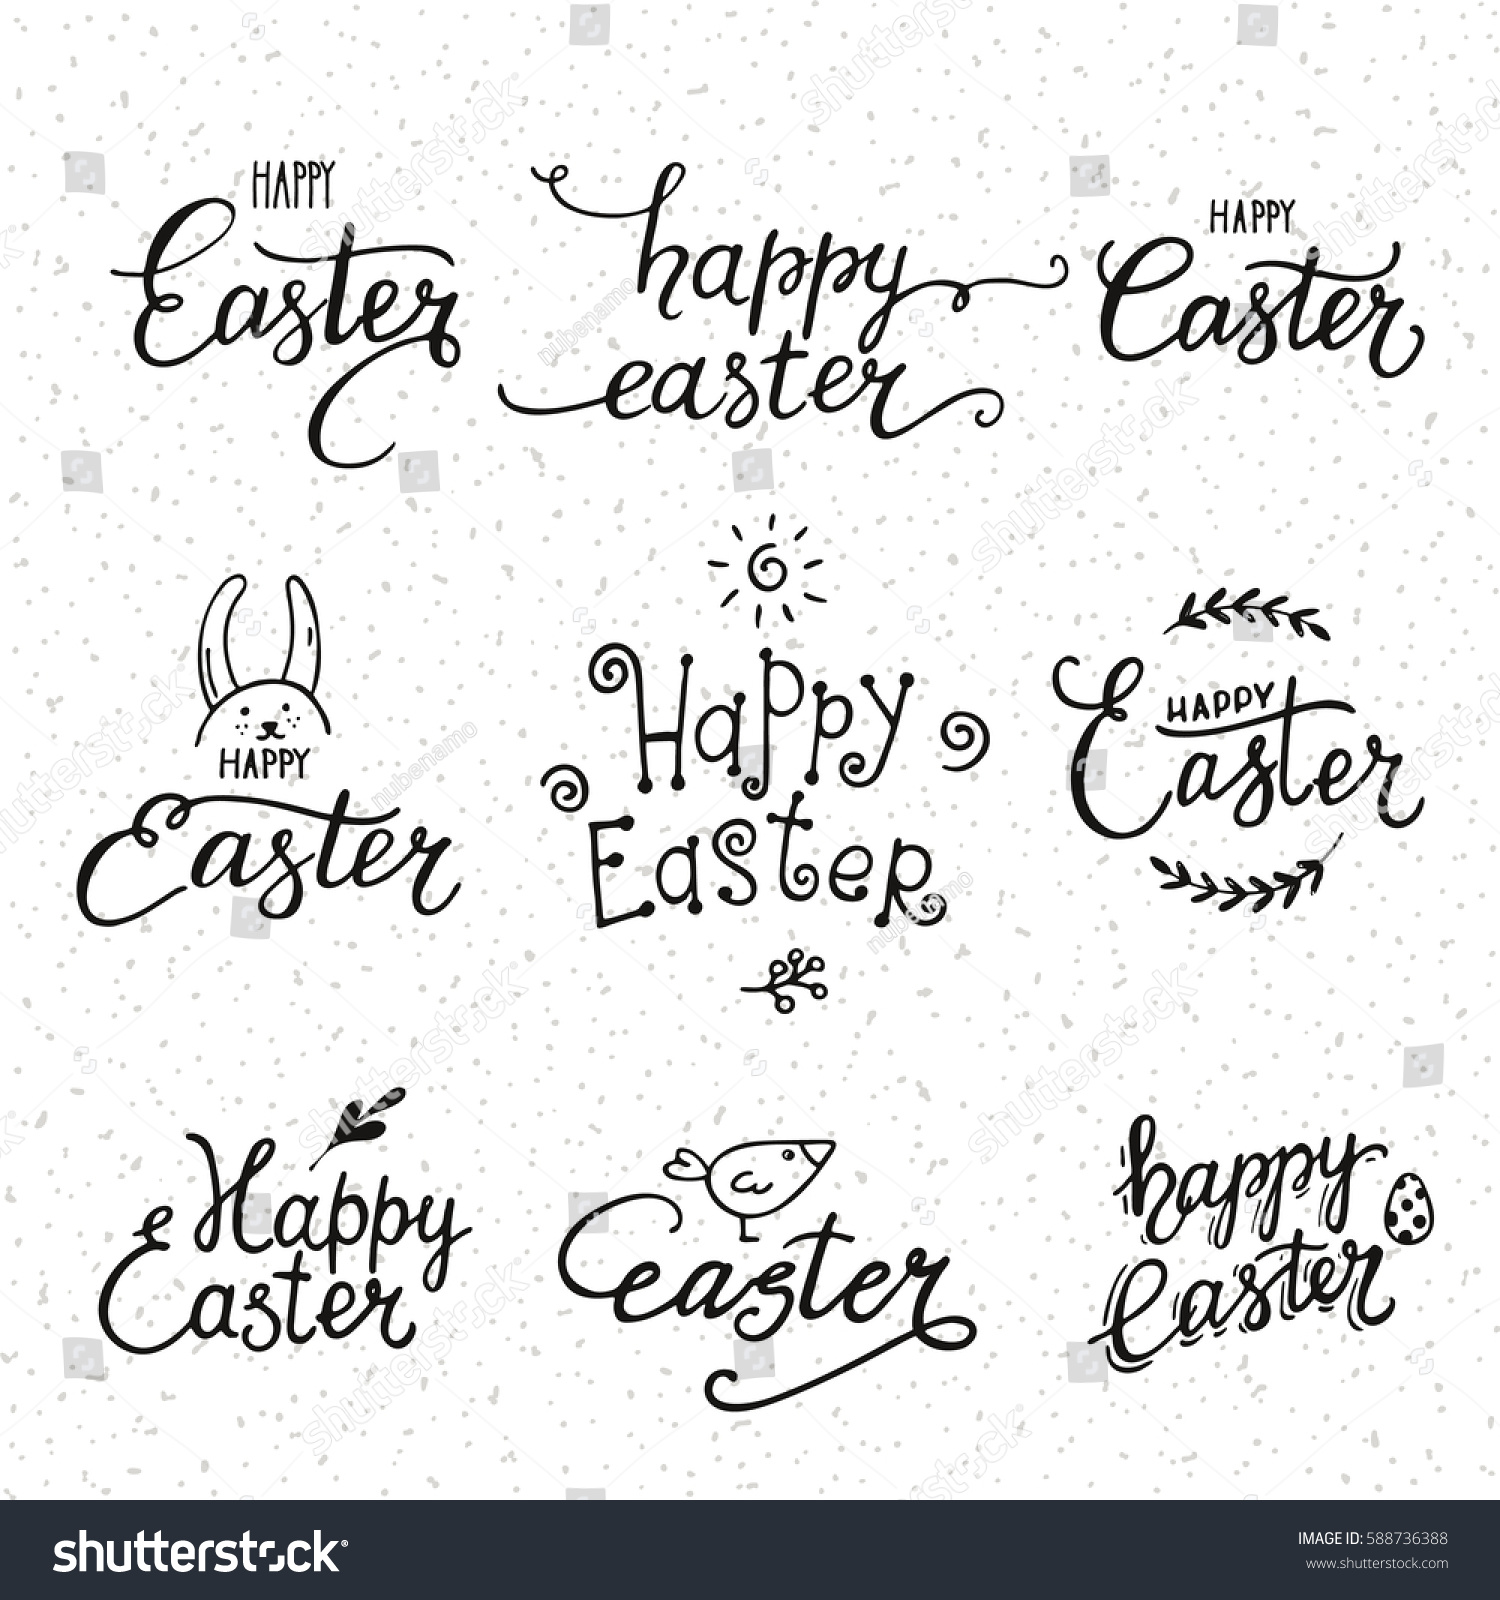 happy easter congratulations artistic collection handwritten stock